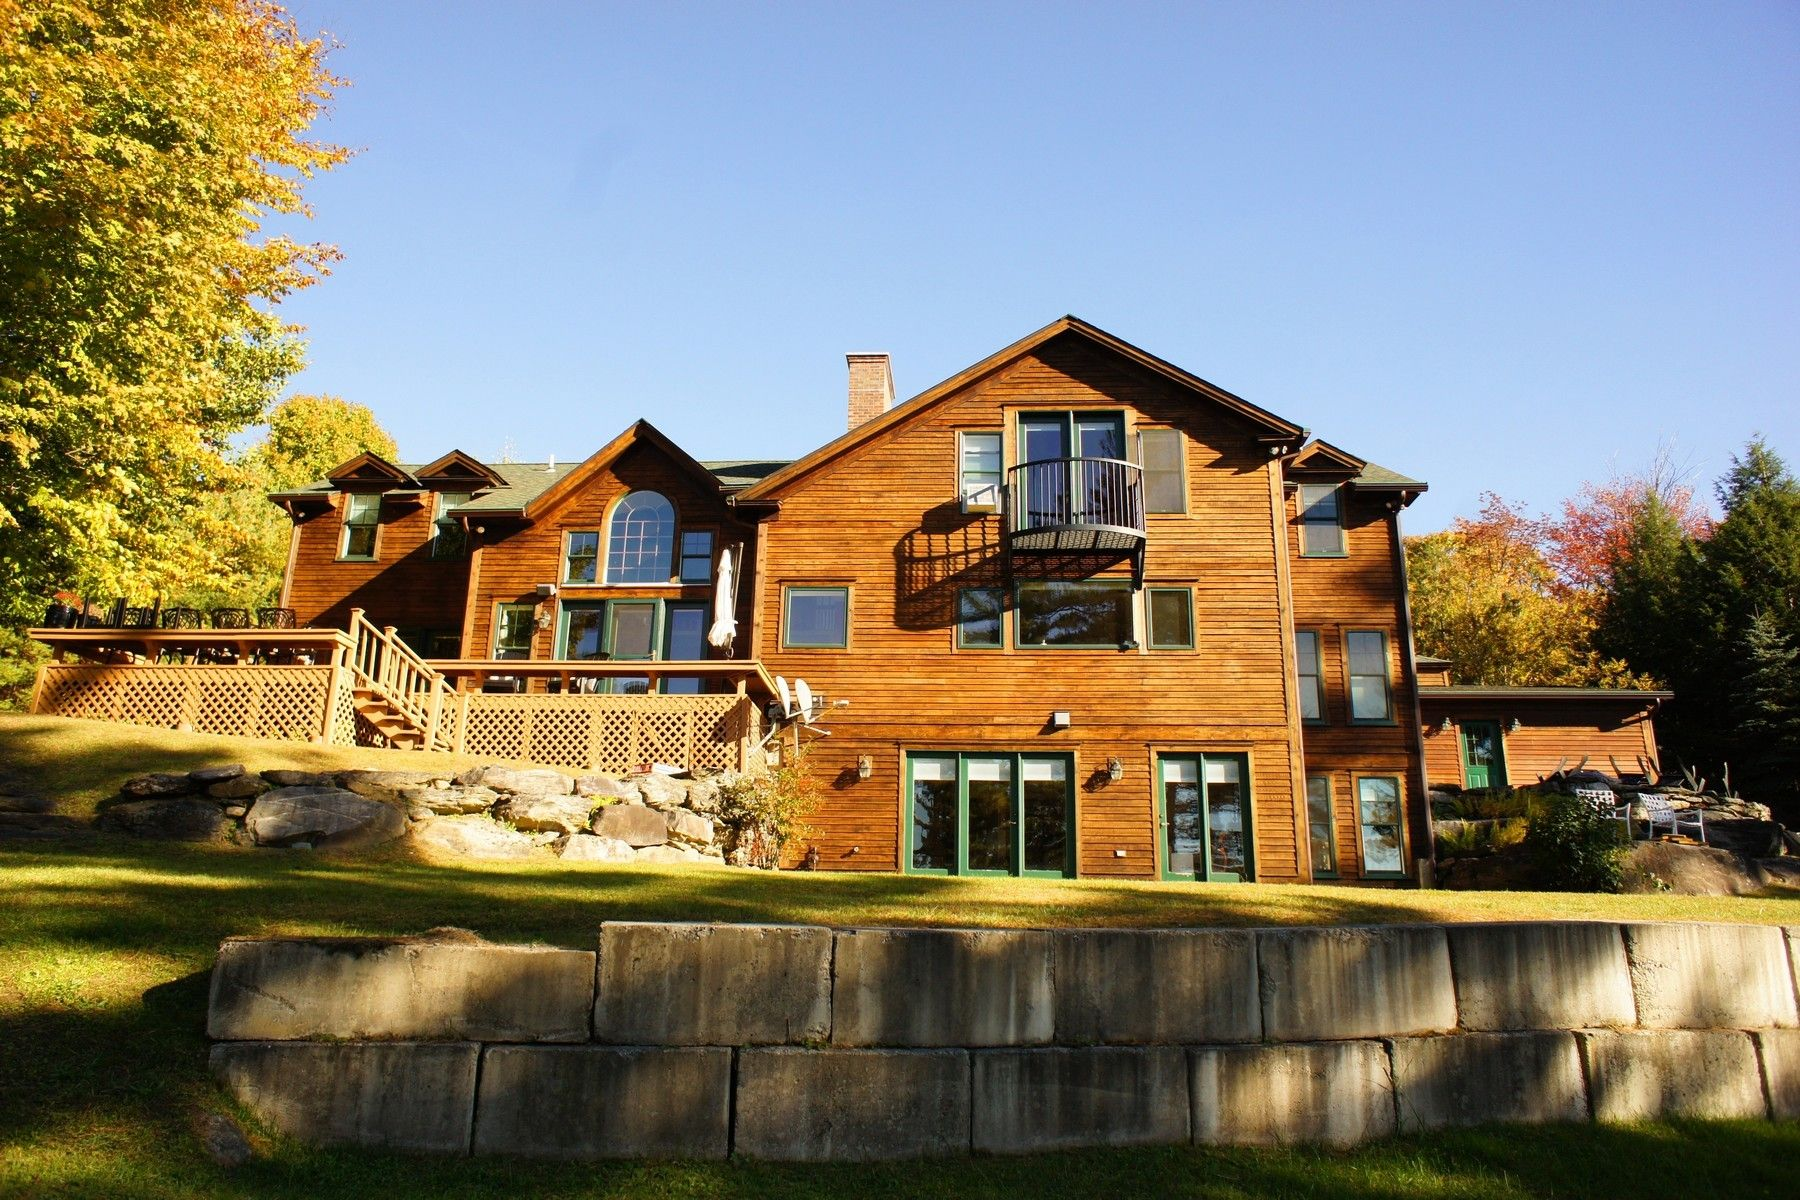 160 E Ridge Rd, Stowe, VT 05672 5 Bedroom Apartments for